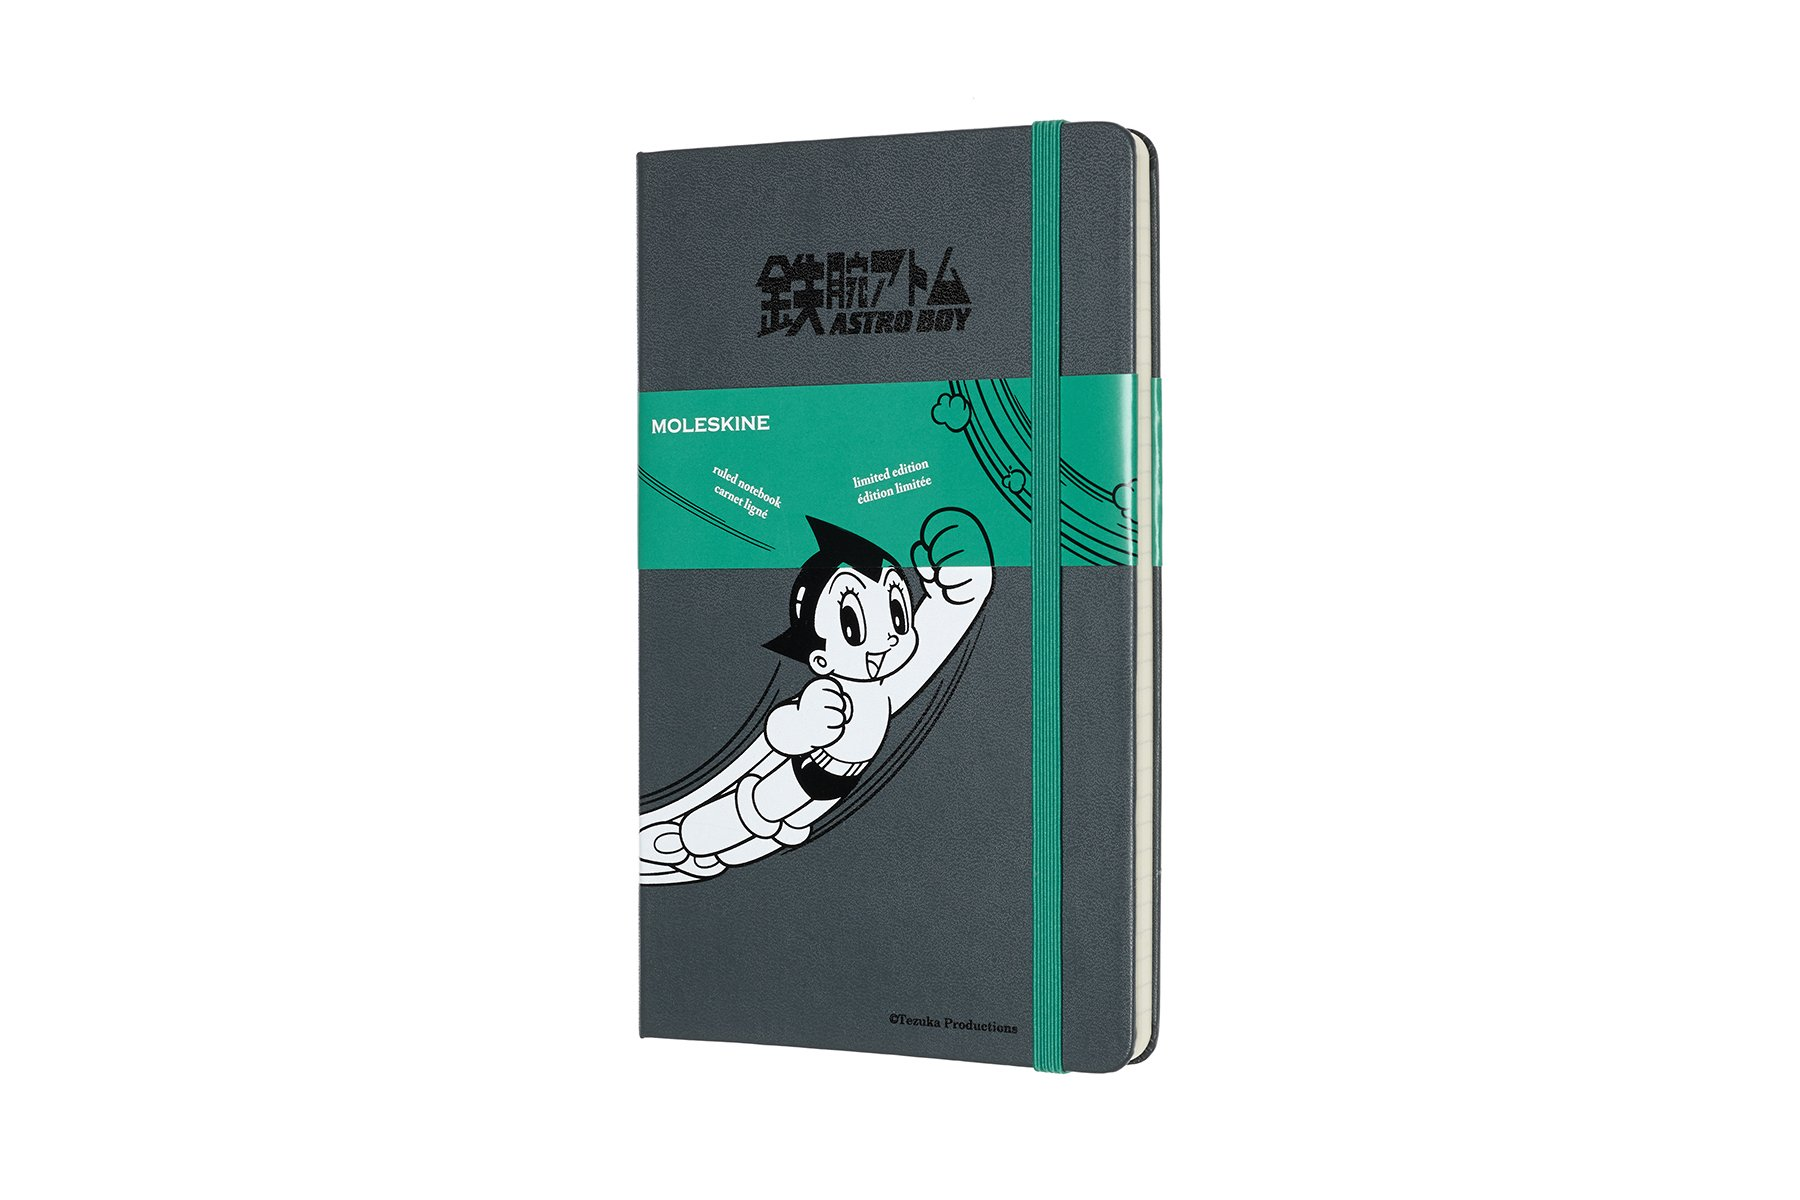 Moleskine Limited Edition Astro Boy Hard Cover Notebo ()